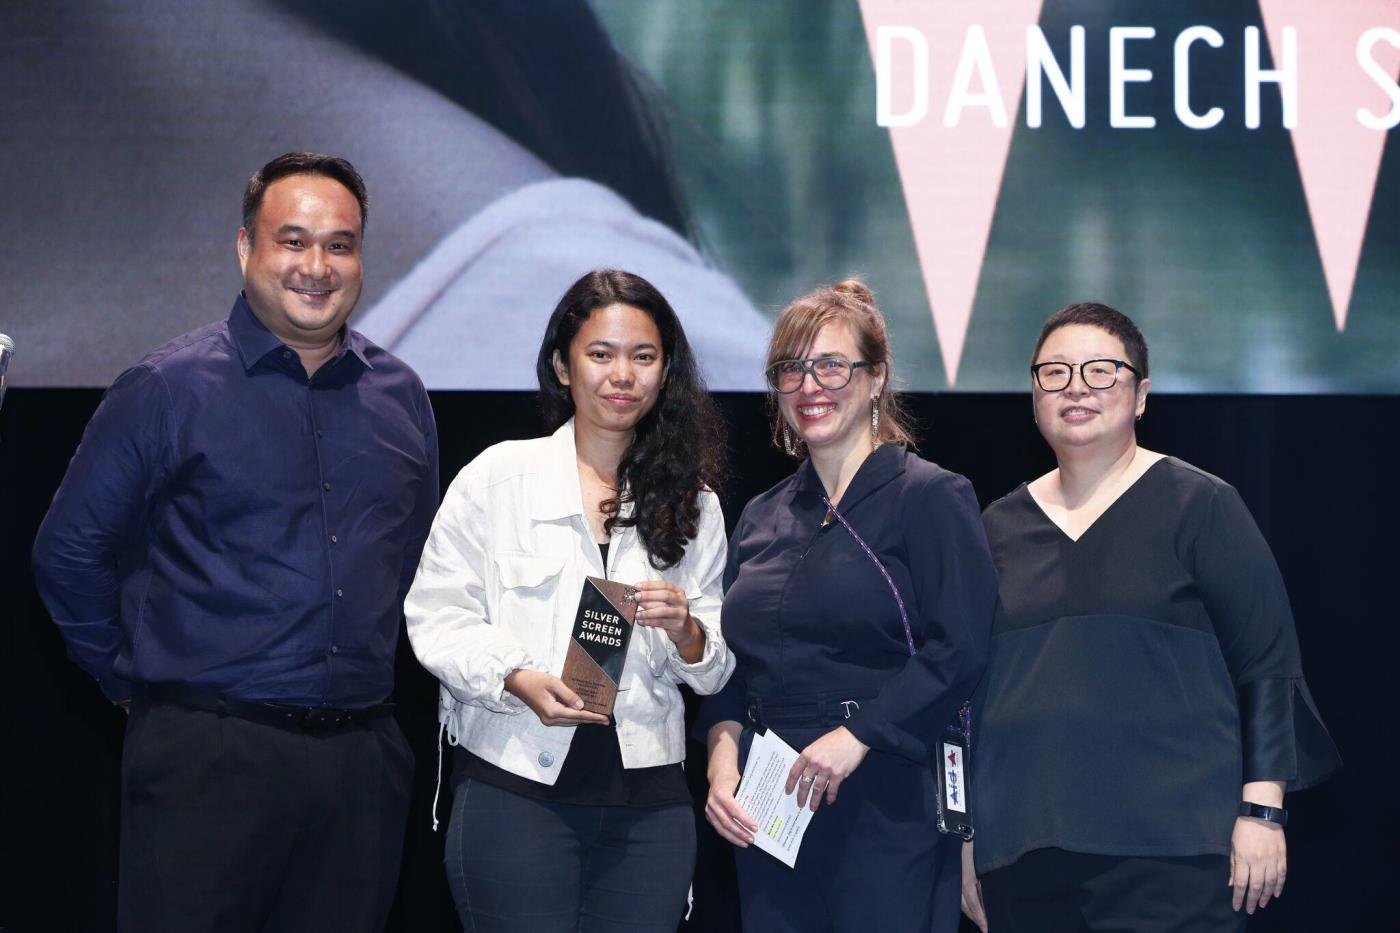 Danech San winner of Best Southeast Asian Short Film